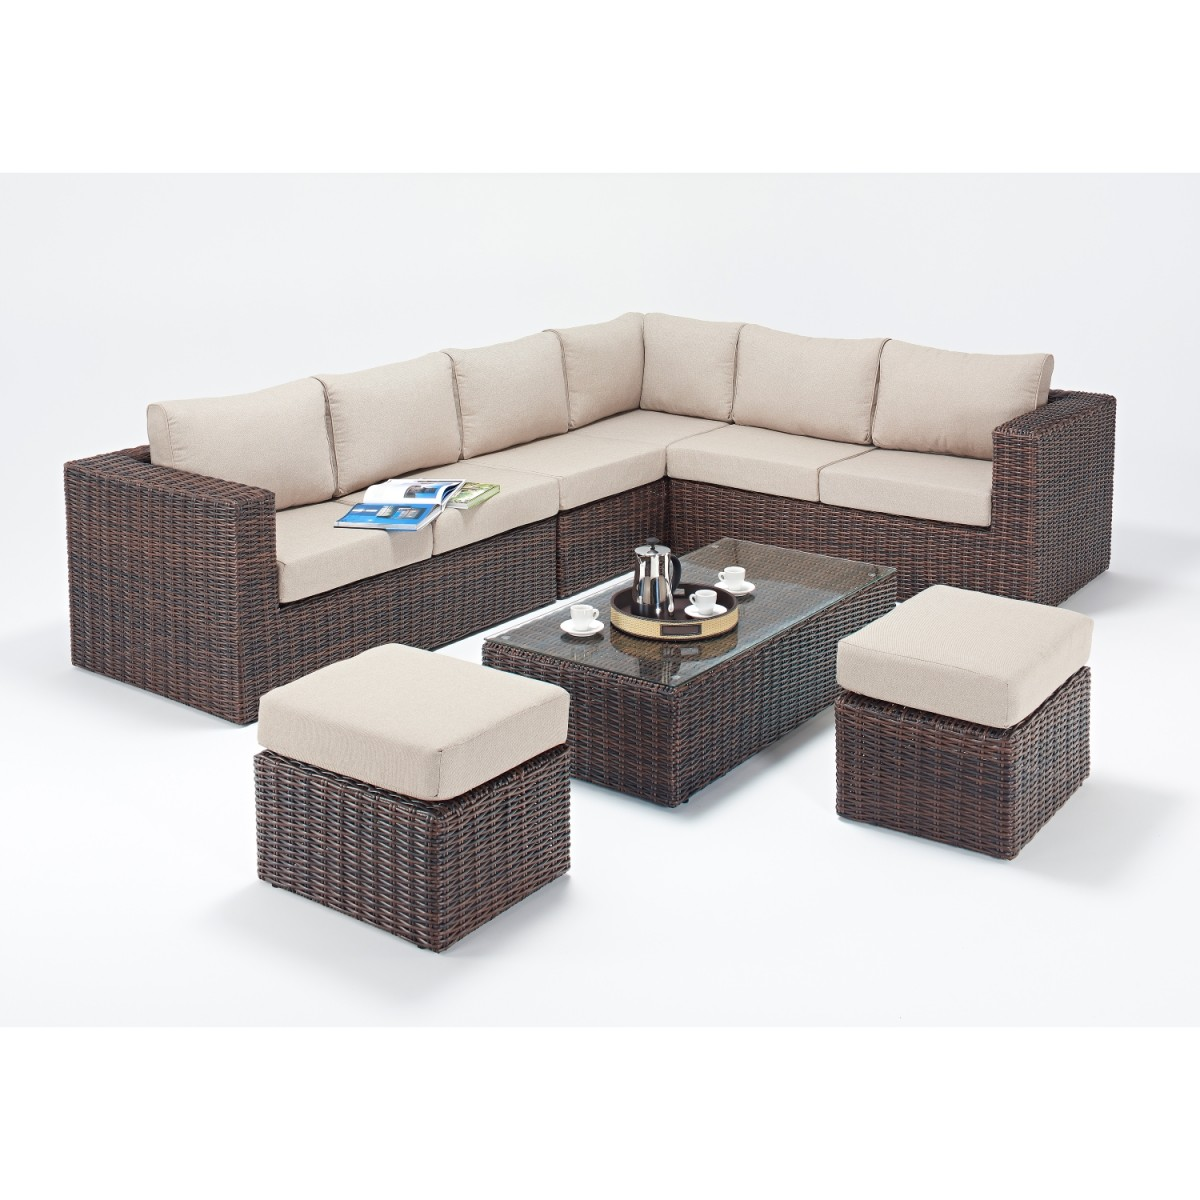 Rattan Sets Windsor Large Corner Sofa Set Wgf 2710 Right